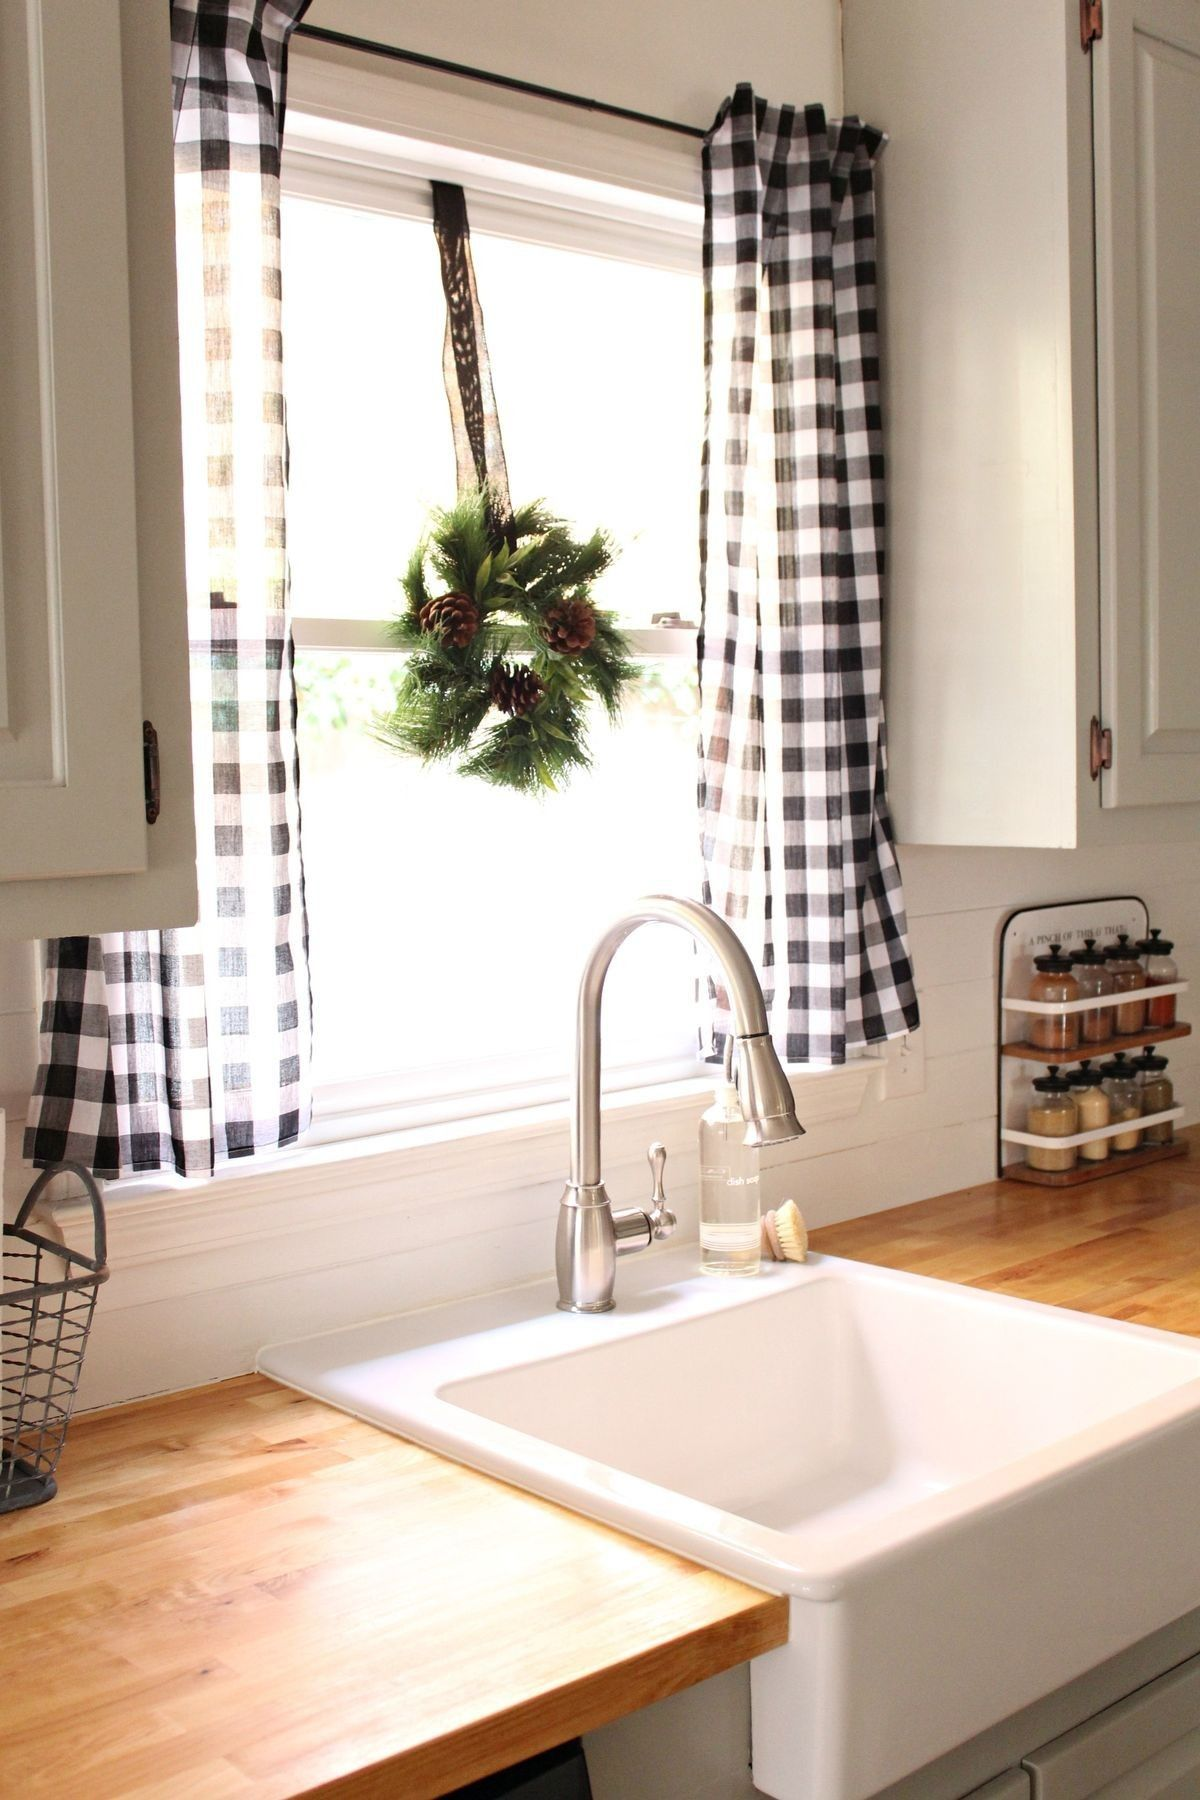 Over the sink kitchen window treatments  buffalo check  kitchen  pinterest  buffalo check and sinks